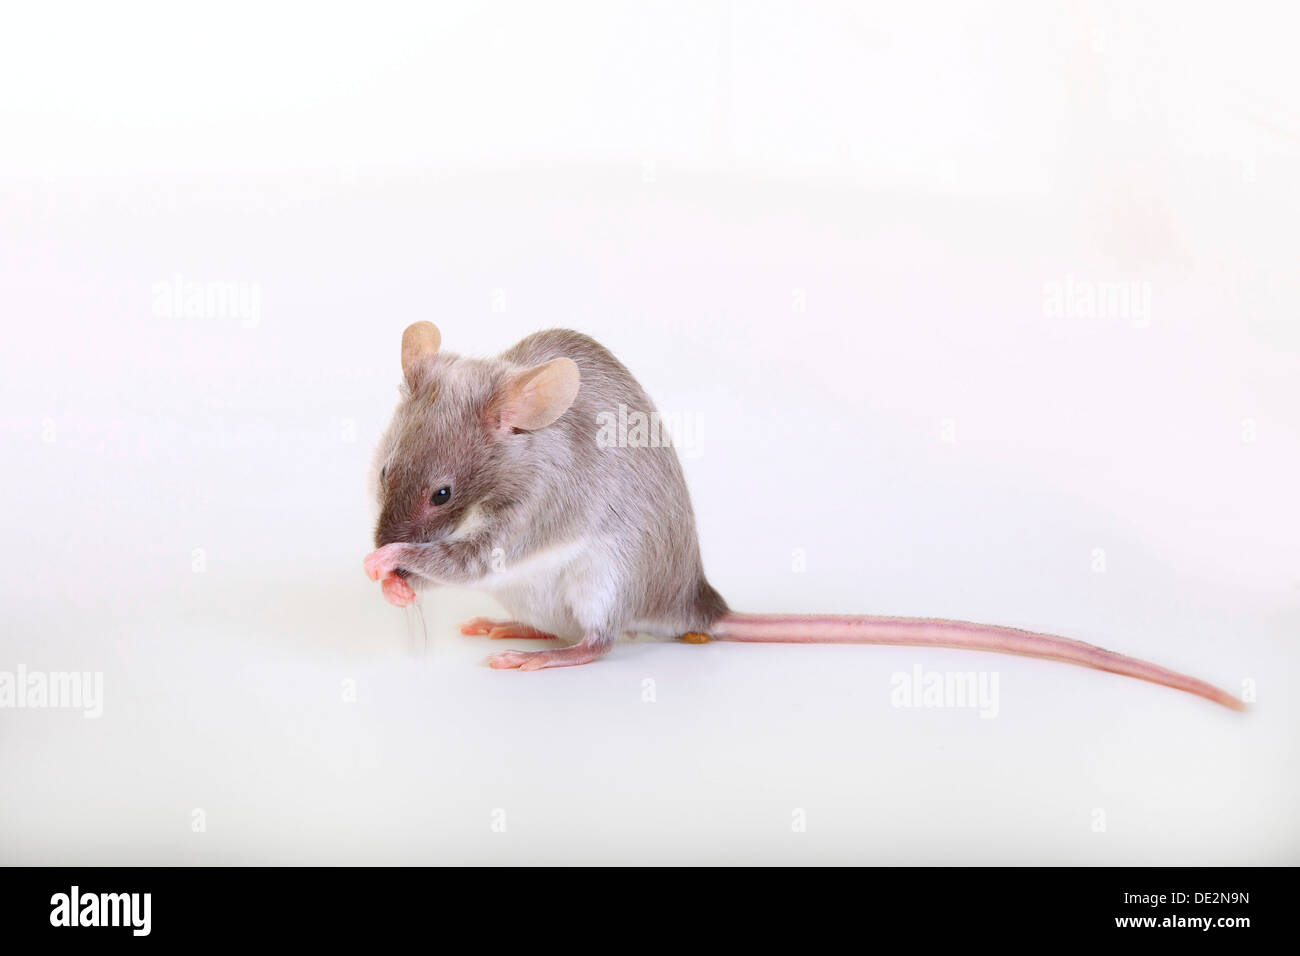 Fancy Mouse, a domesticated form of the House Mouse (Mus musculus) - Stock Image